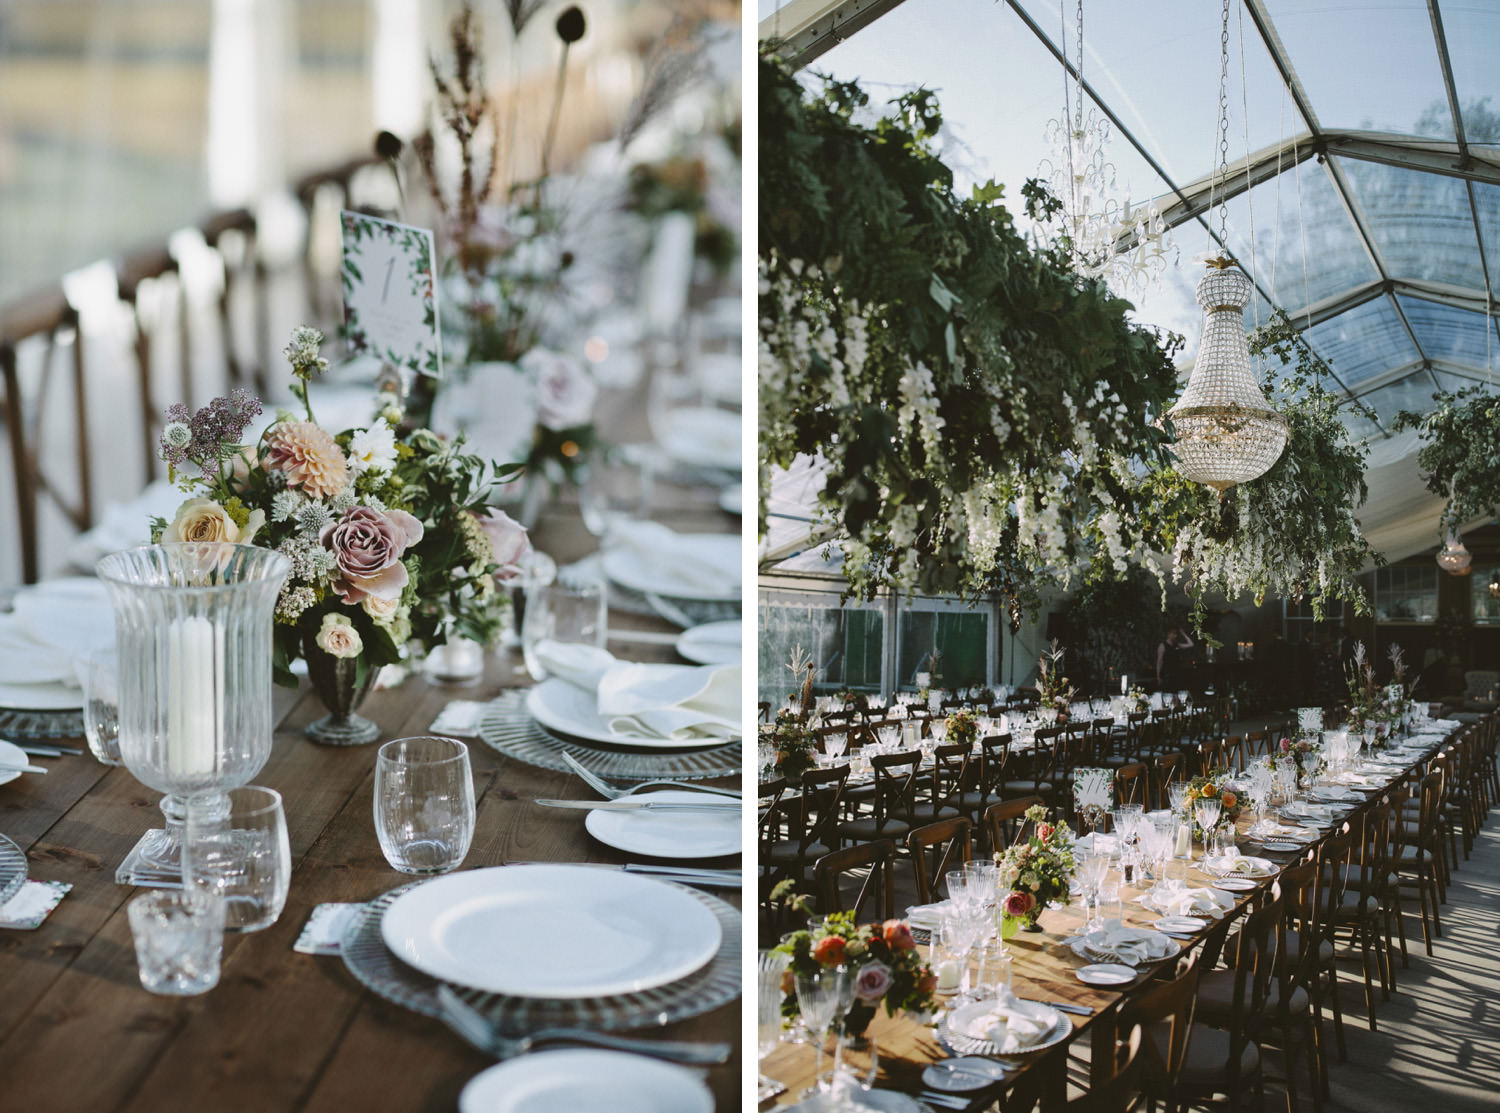 Clear marquee with hanging florals and chandeliers